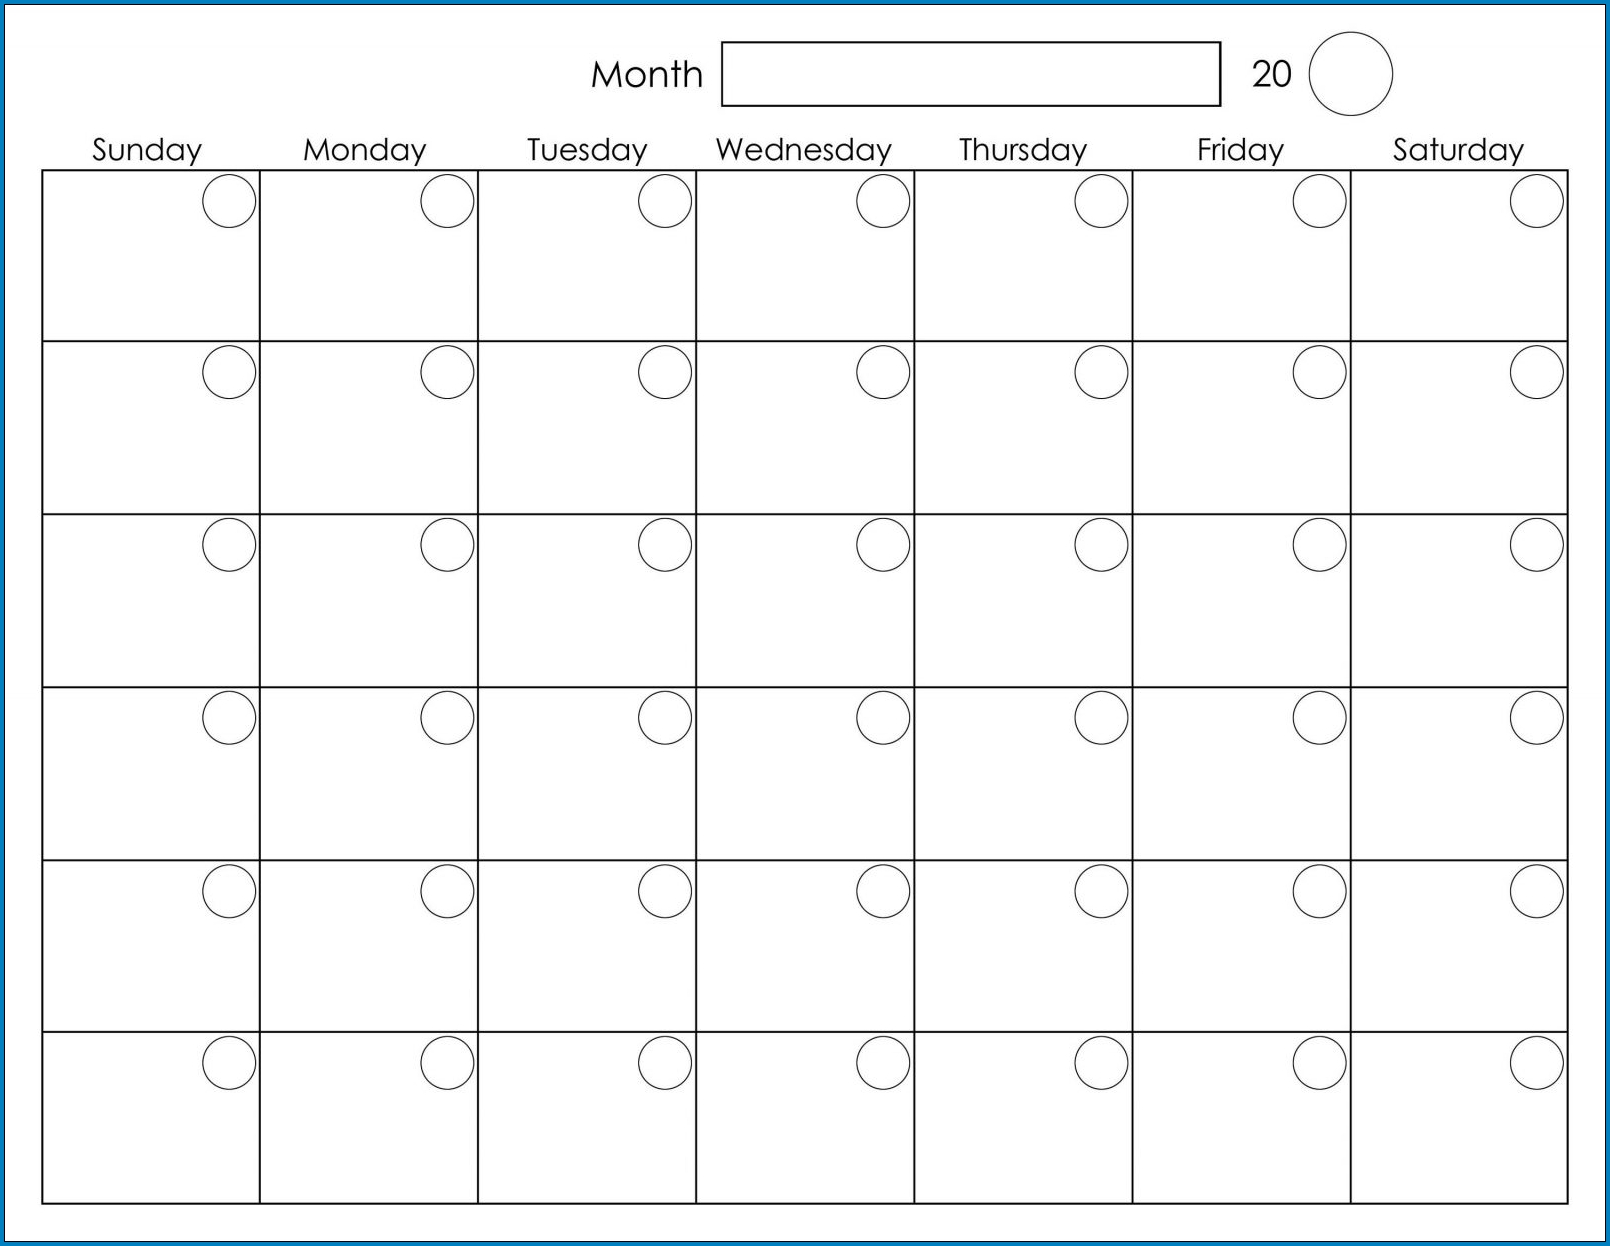 Free Printable Monthly Calendar Template | Templateral